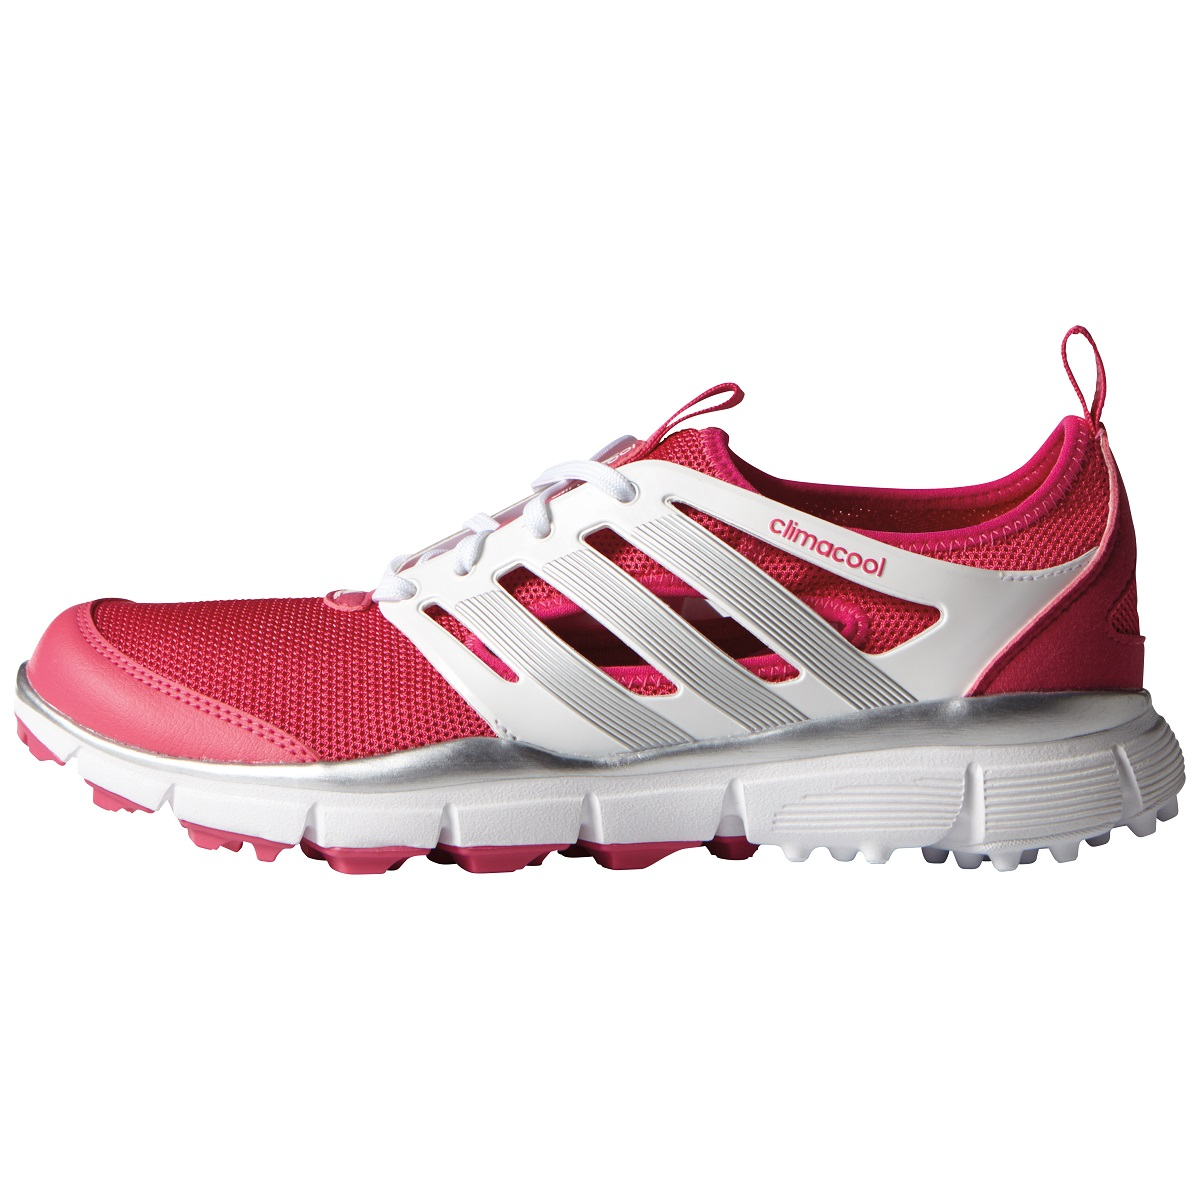 adidas climacool 2 golf shoes by adidas golf ladies golf. Black Bedroom Furniture Sets. Home Design Ideas